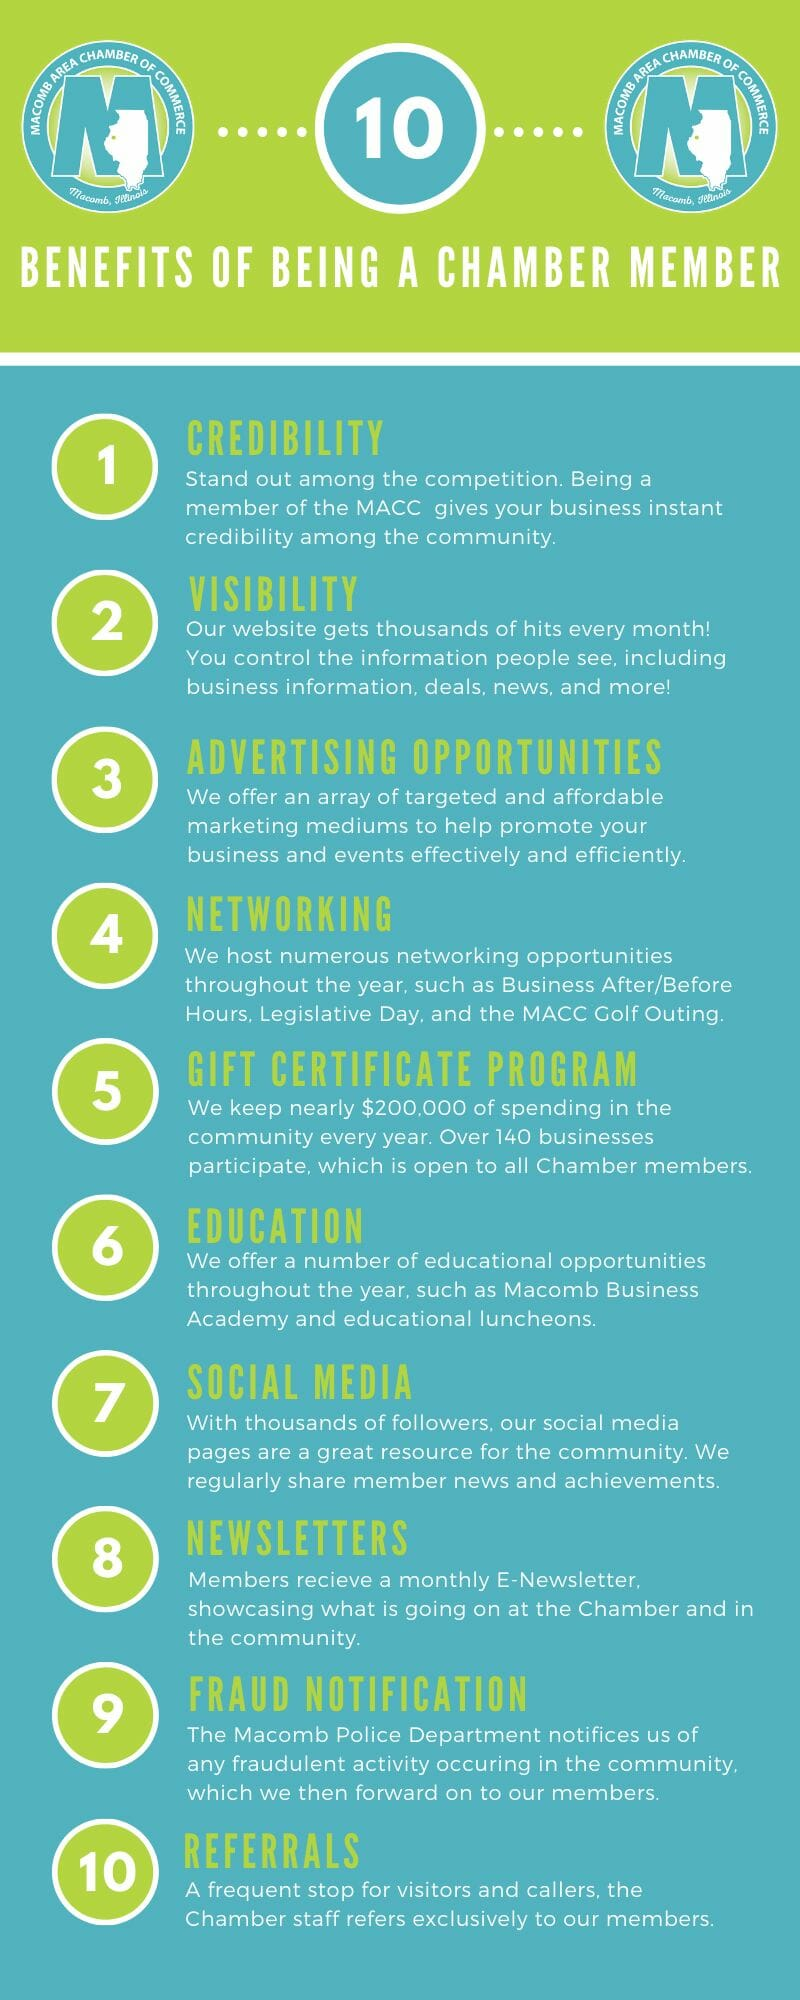 10 Benefits of Being a Chamber Member